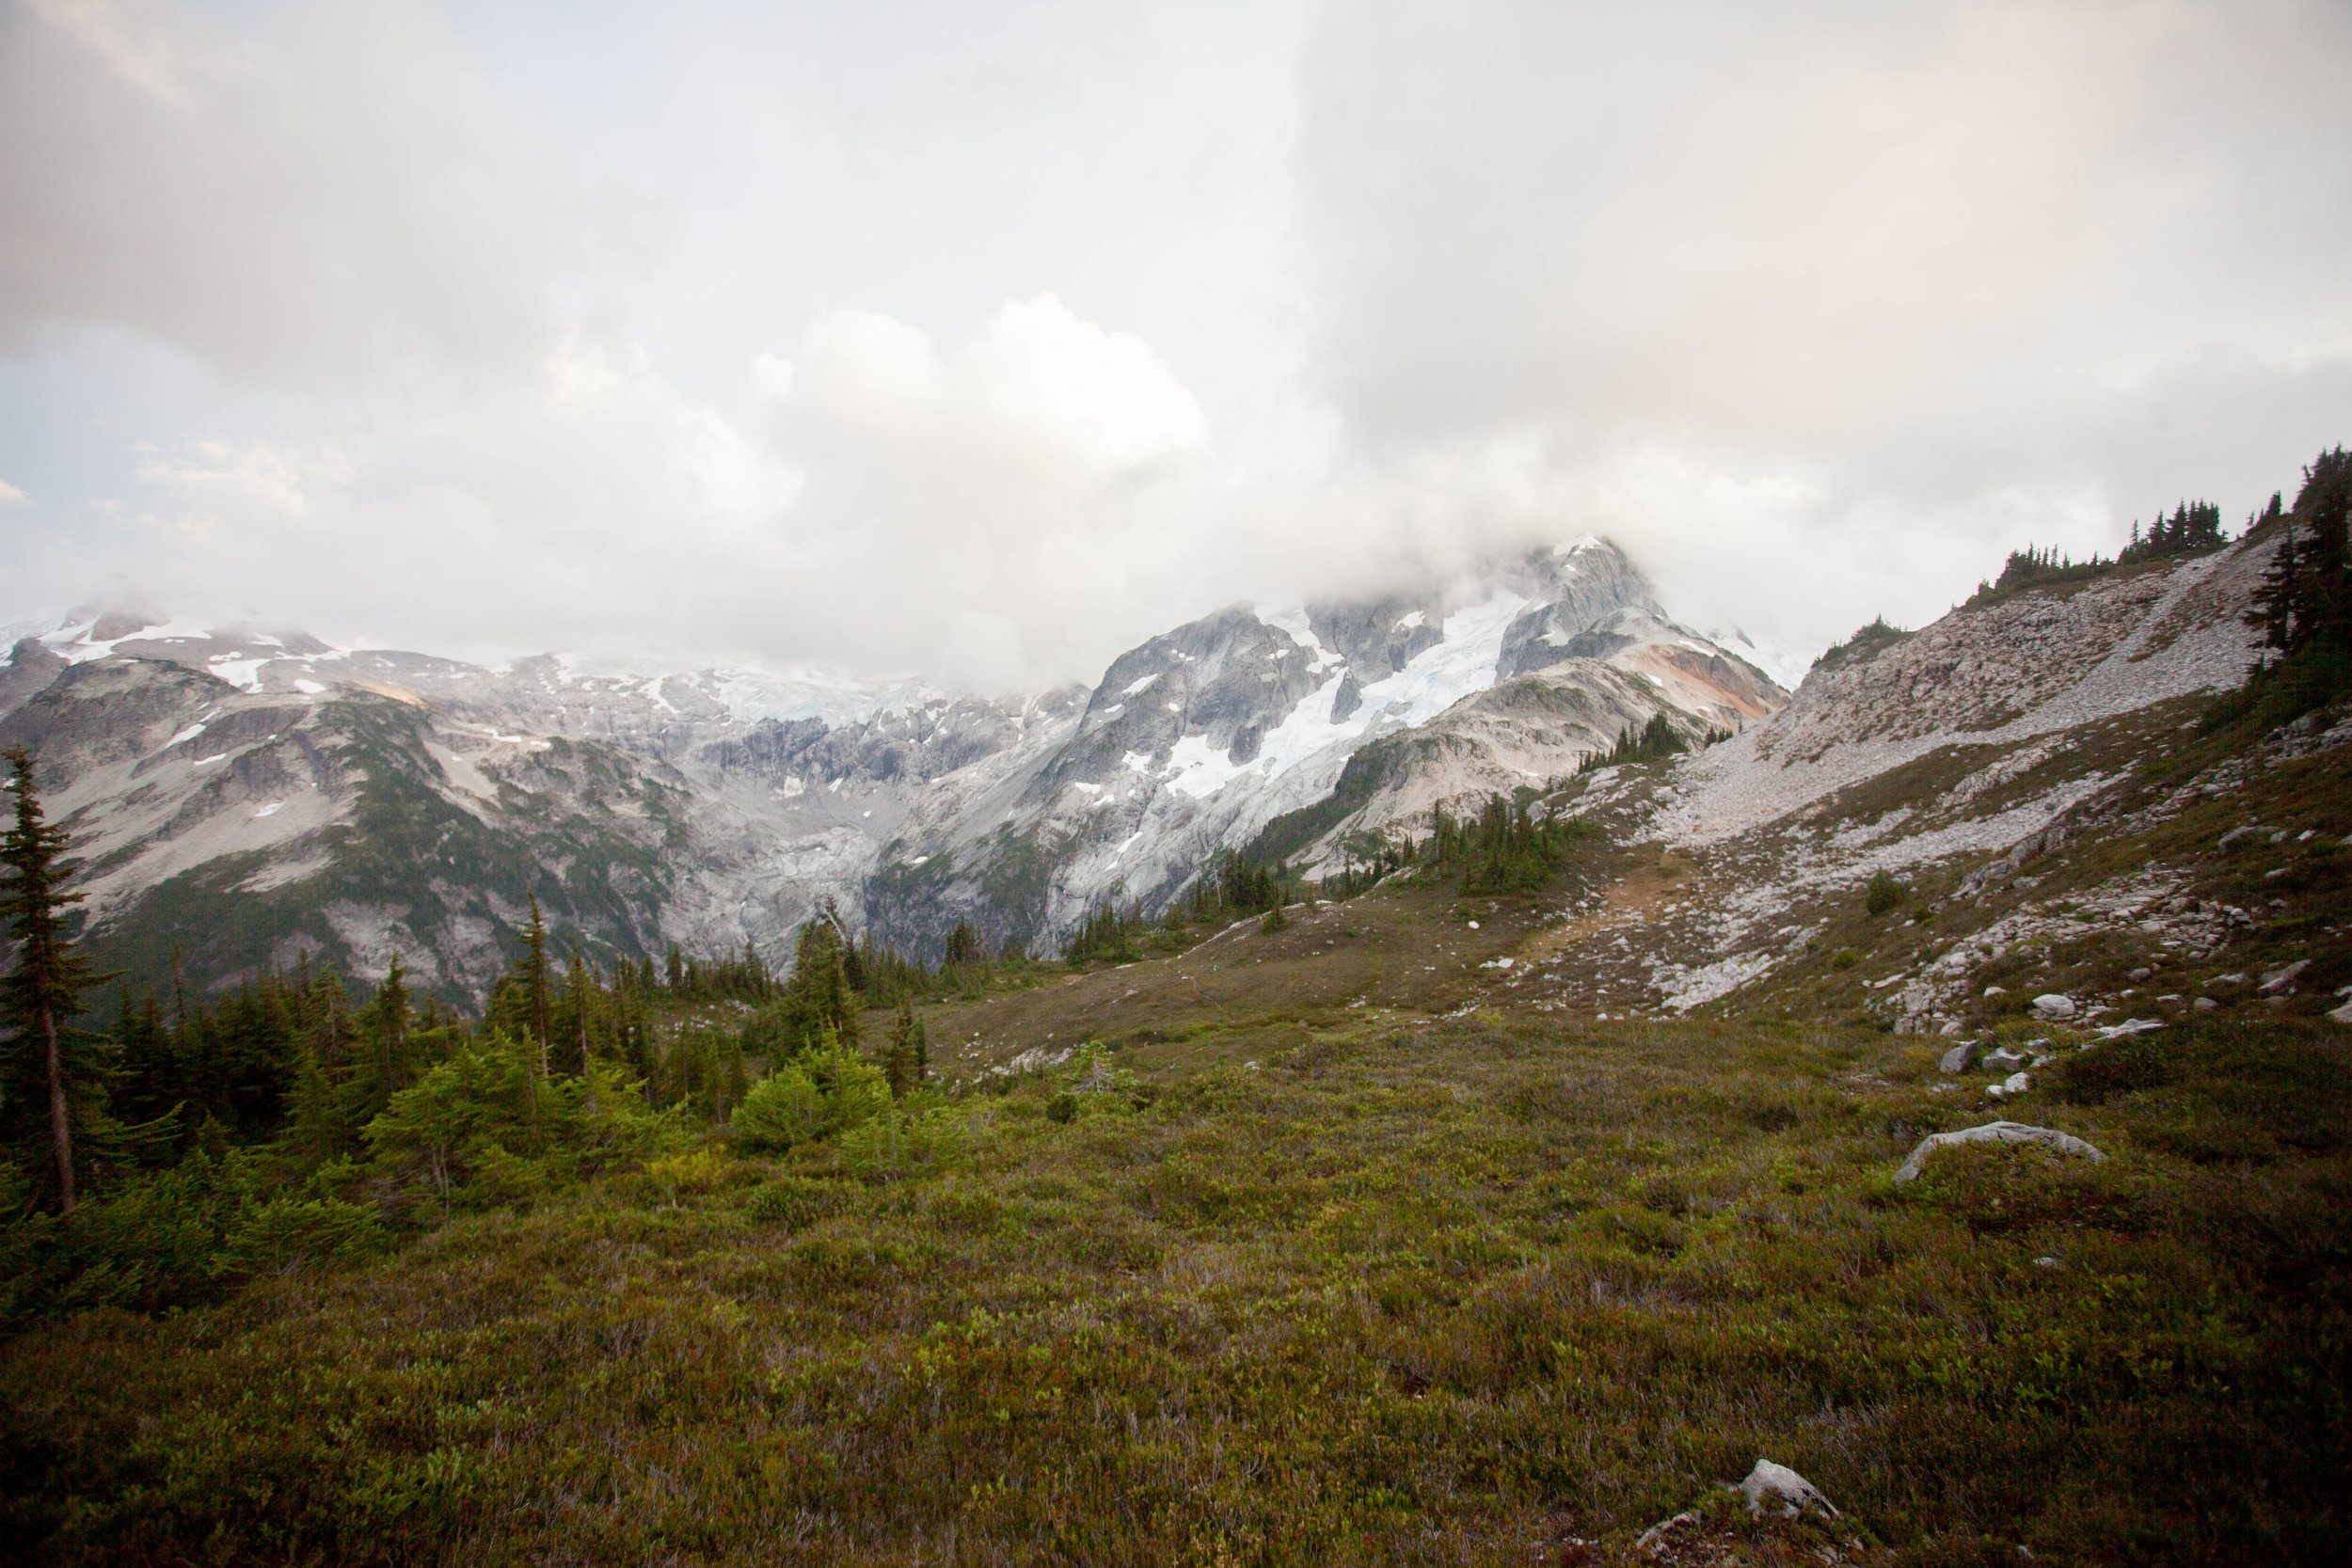 The bases of Whatcom Peak and Challenger in the clouds